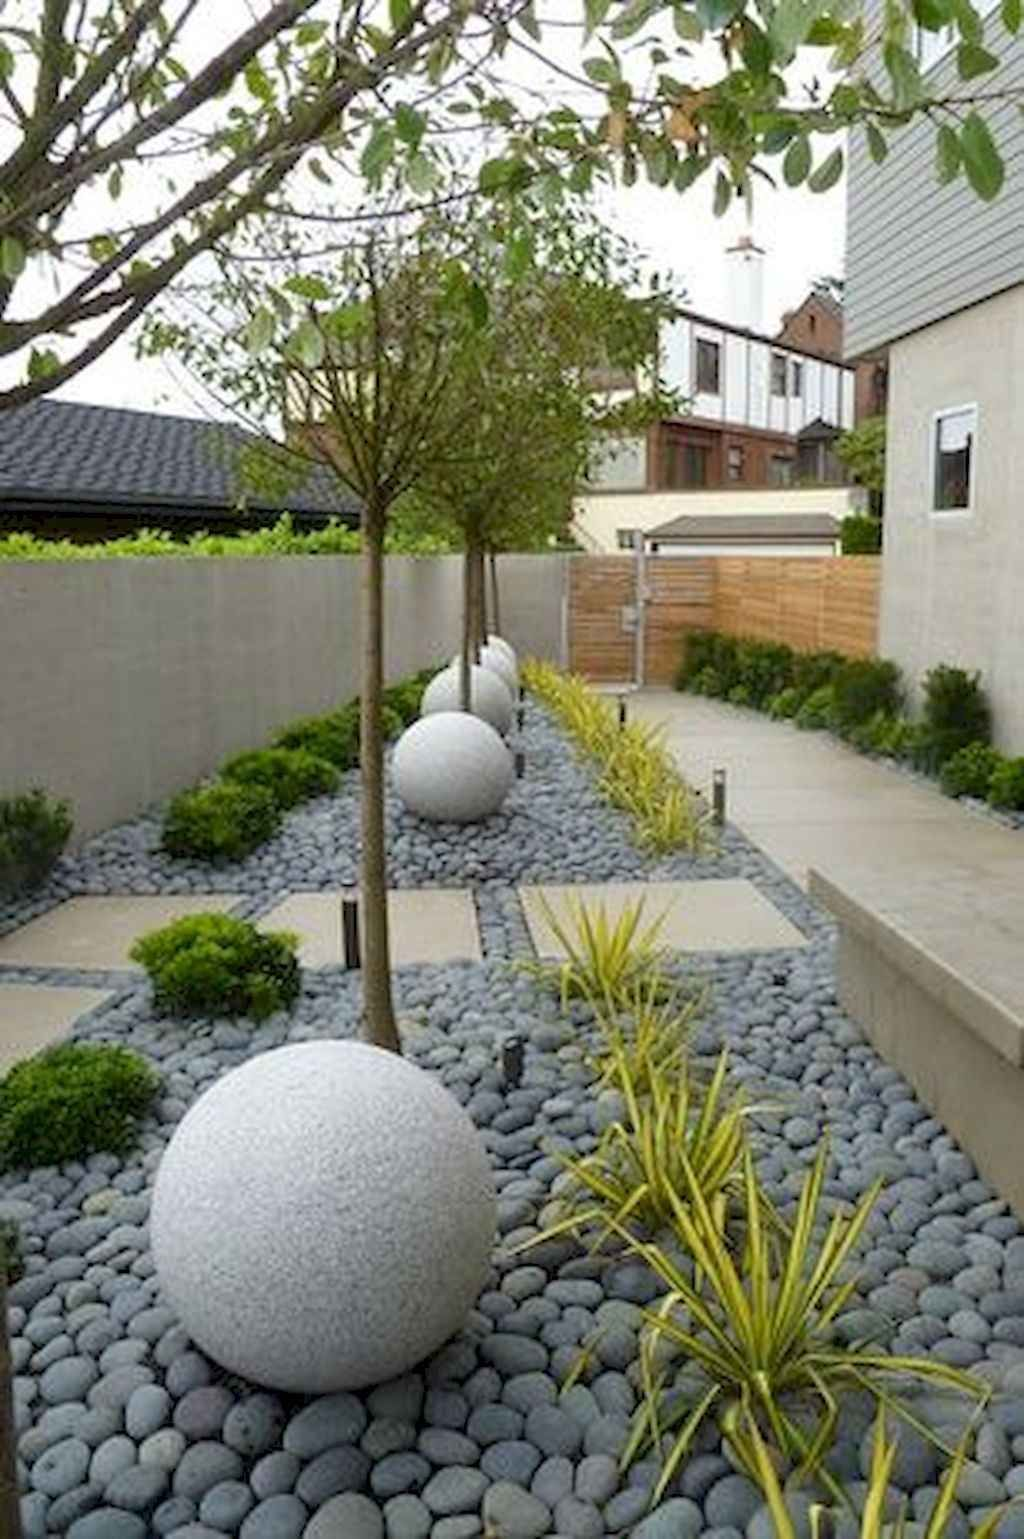 Cool 55 Simple Low Maintenance Front Yard Landscaping Ideas Https Domakeover Com 55 Sim Modern Landscaping Modern Landscape Design Small Backyard Landscaping